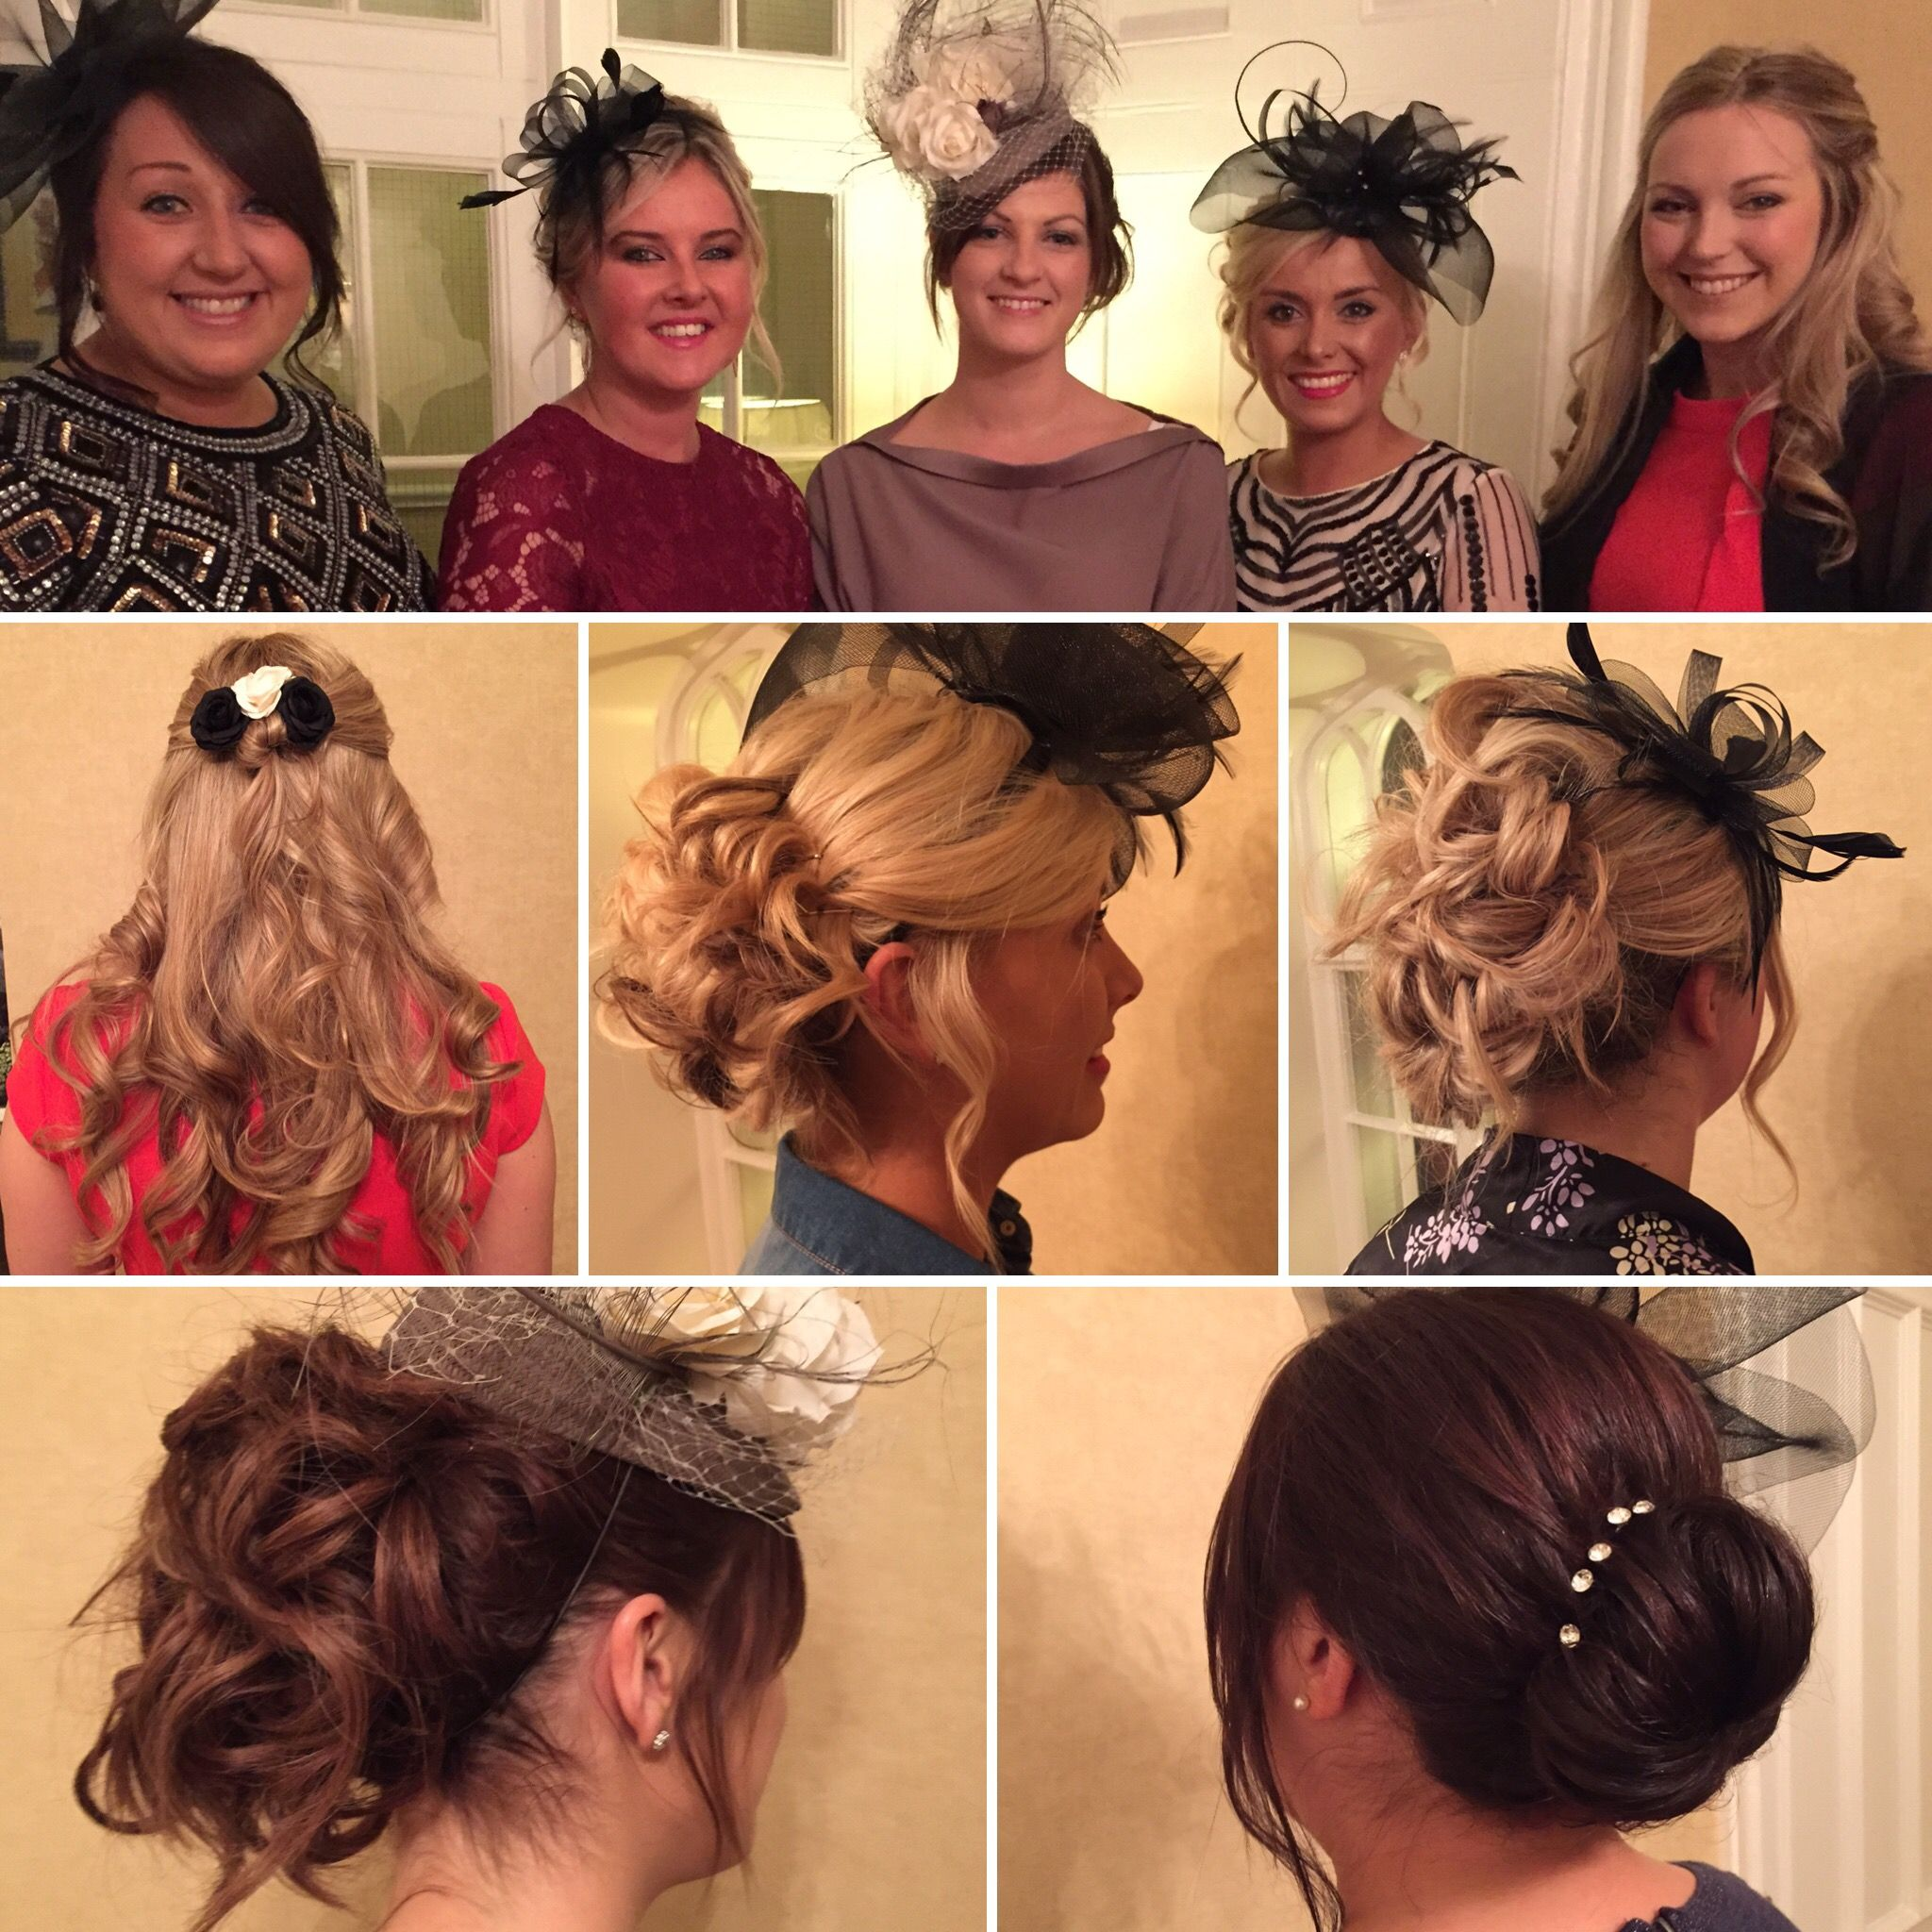 Hair By Jackie Of Jax Glam Beauty In Various Up Do S Curls Half Down Messy Bun To Back And Side Accessorised With Fascinators For Wedding